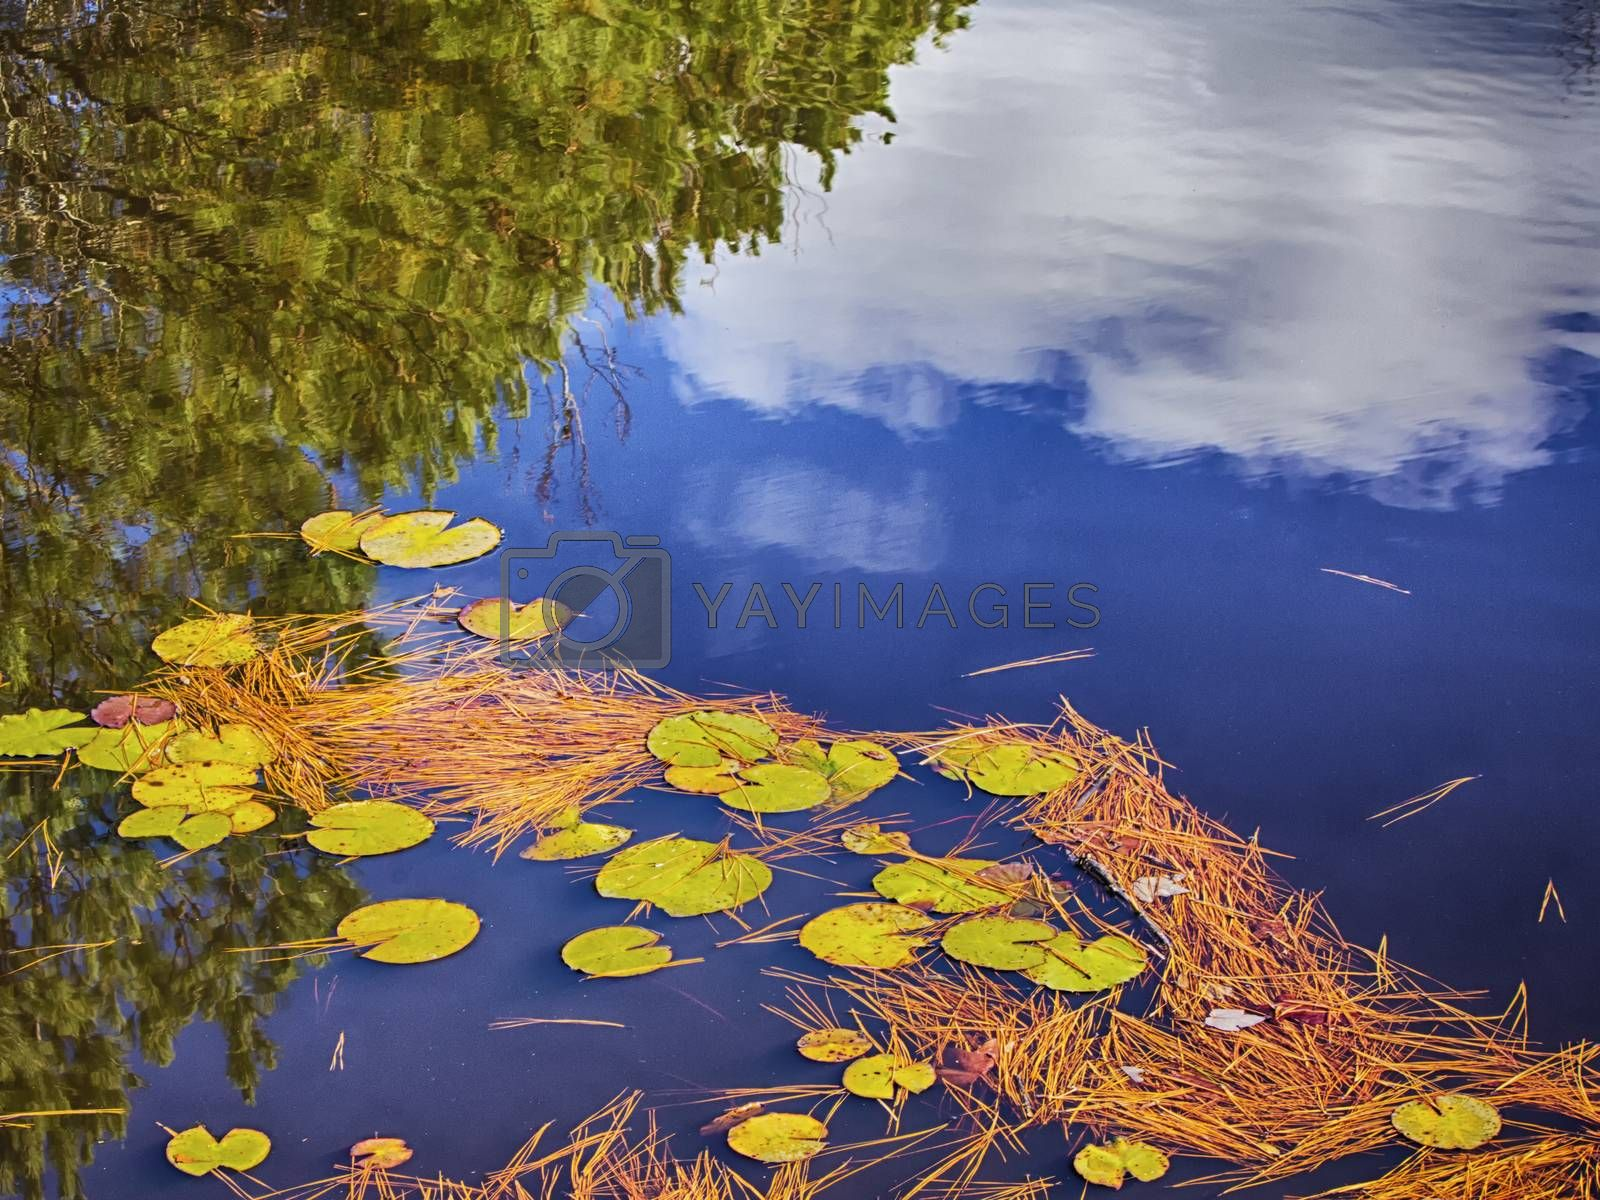 Reflections in a small lily pond by Charlie Floyd